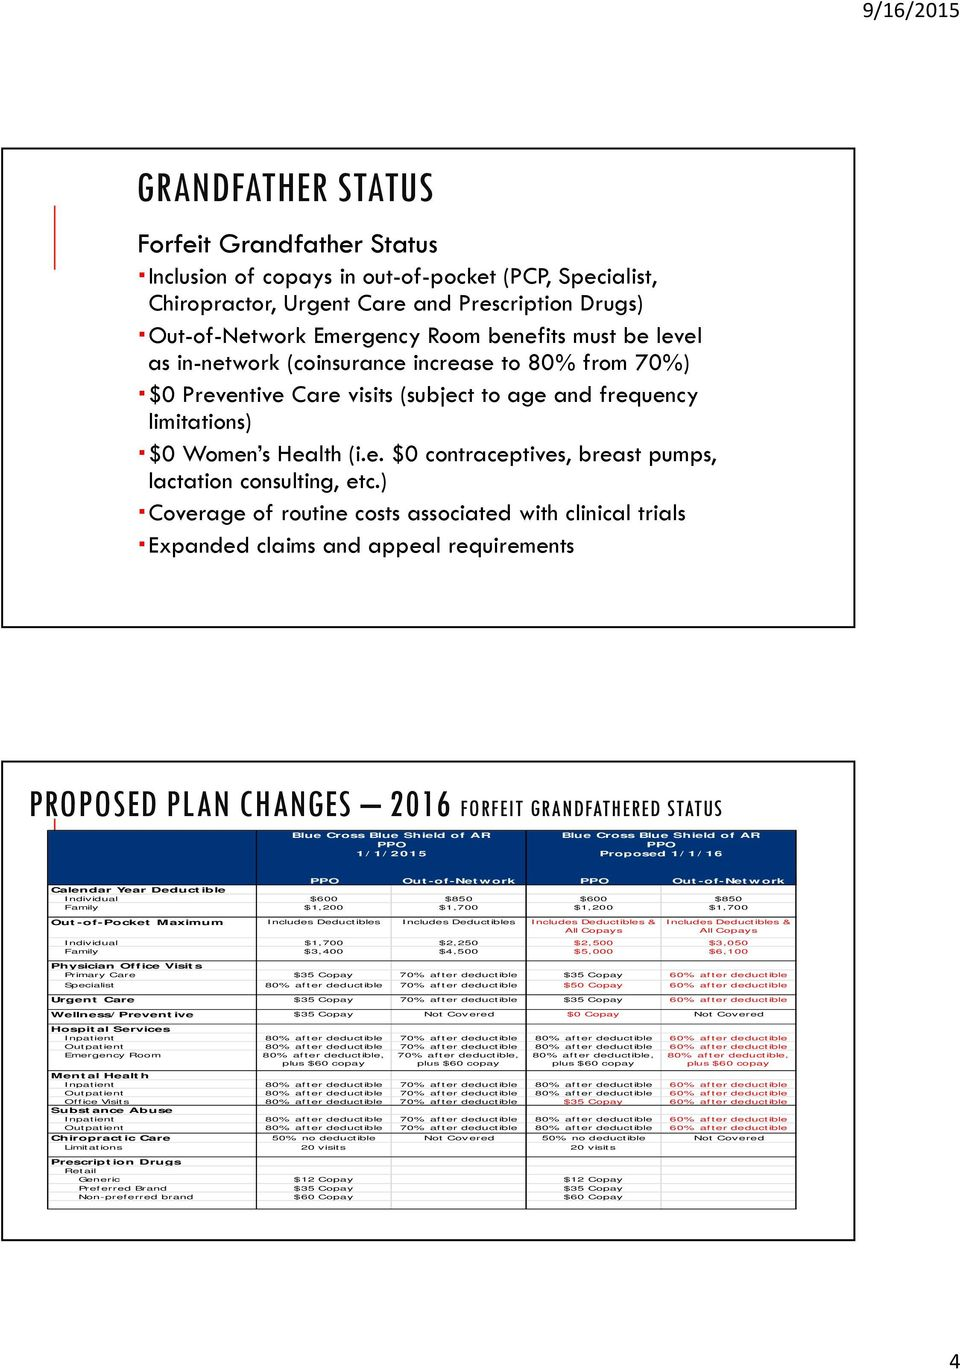 ) Coverage of routine costs associated with clinical trials Expanded claims and appeal requirements ARKANSAS STATE UNIVERSITY SYSTEM PROPOSED PLAN CHANGES 2016 FORFEIT GRANDFATHERED STATUS Blue Cross